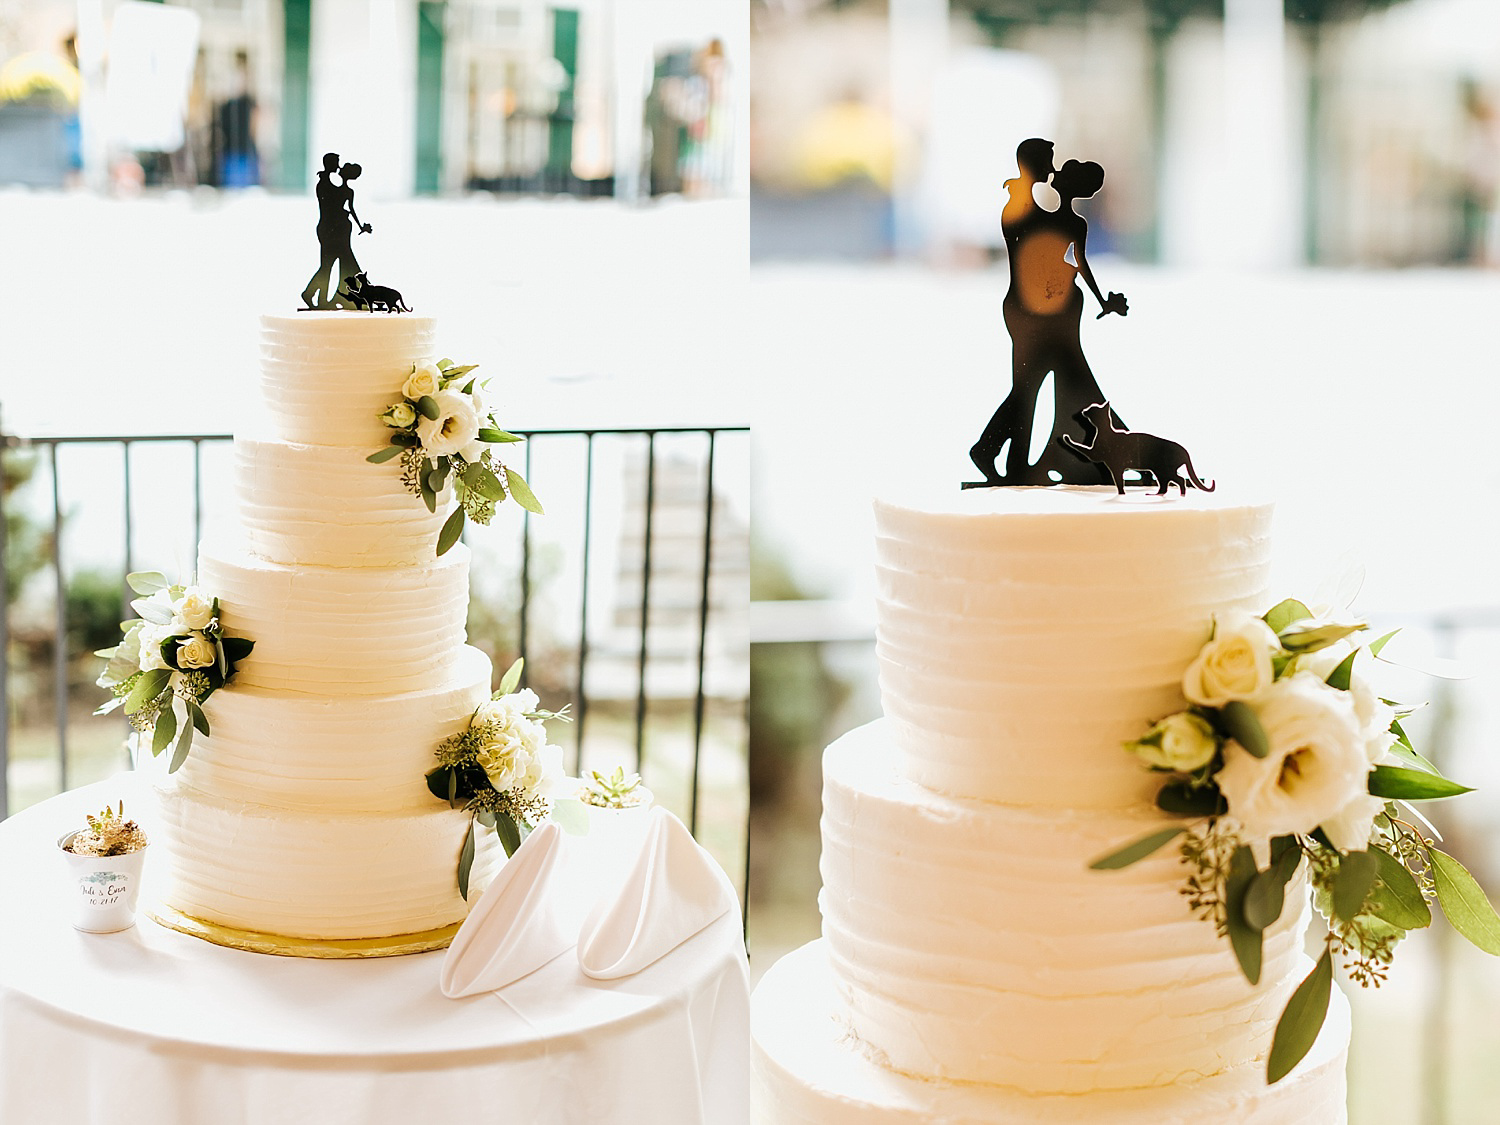 Fall wedding cake at philander chase knox by danfredo photos + films